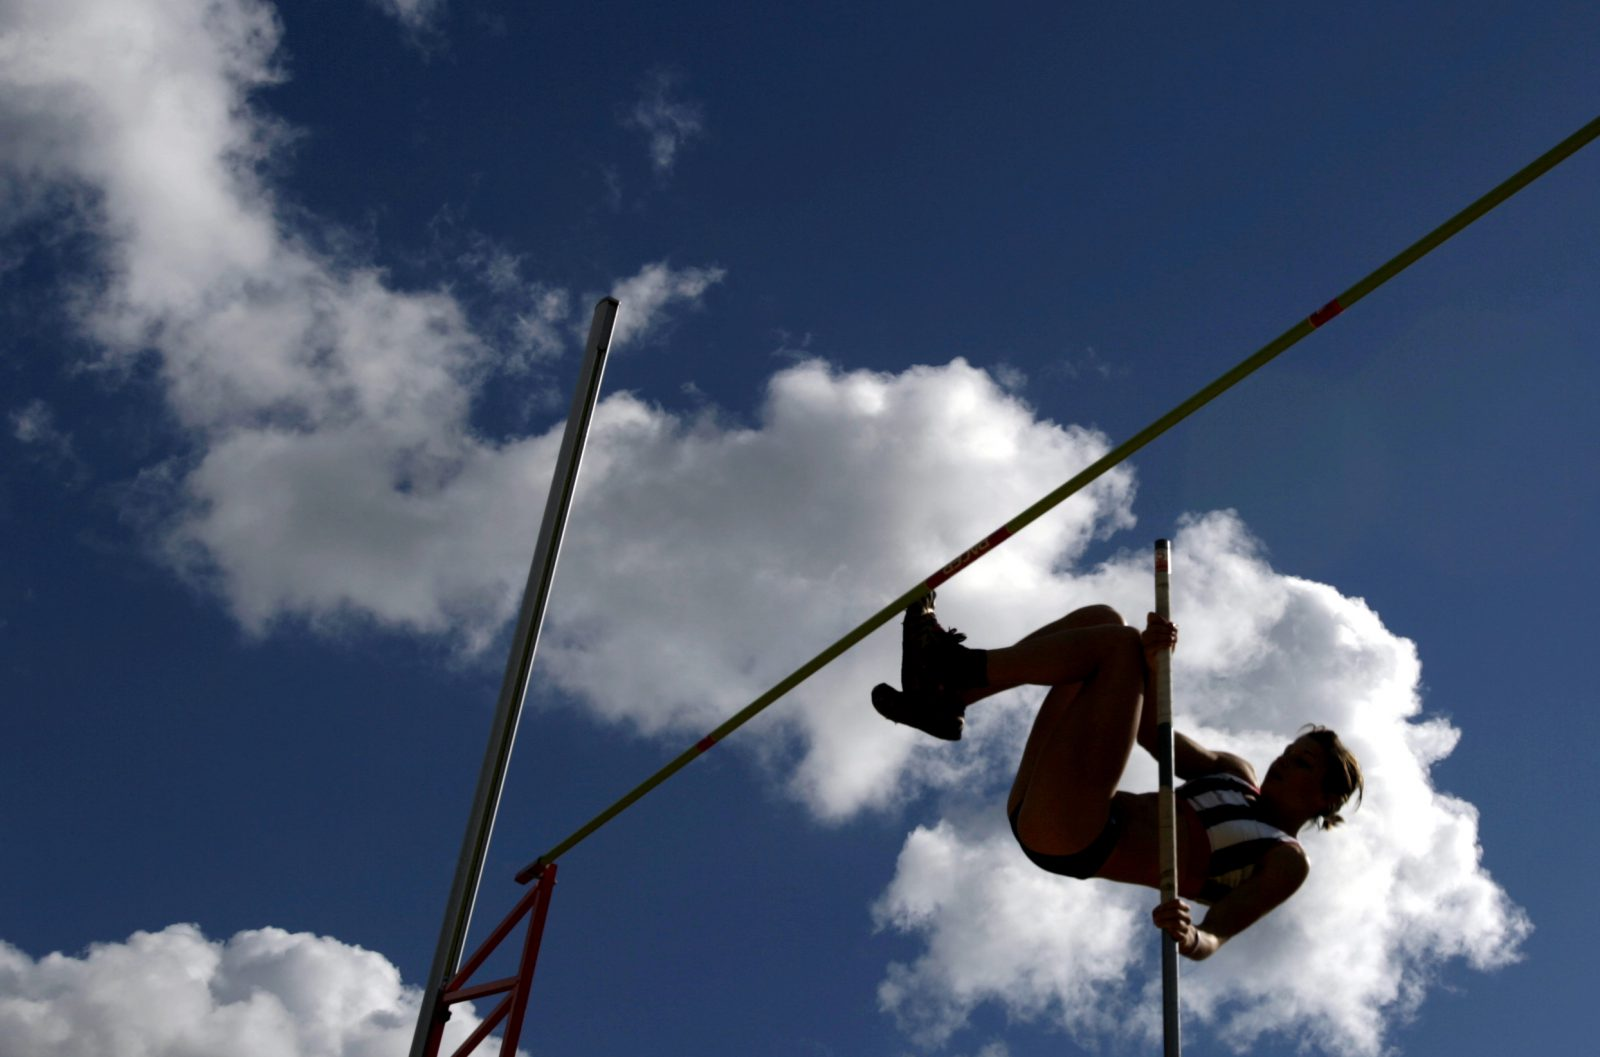 Zoe Brown vaults during the women's pole vault final on the third day of the World Trials and UK Athletics Championships at the Manchester Regional Athletics Arena in Manchester, northern England, July 29, 2007.